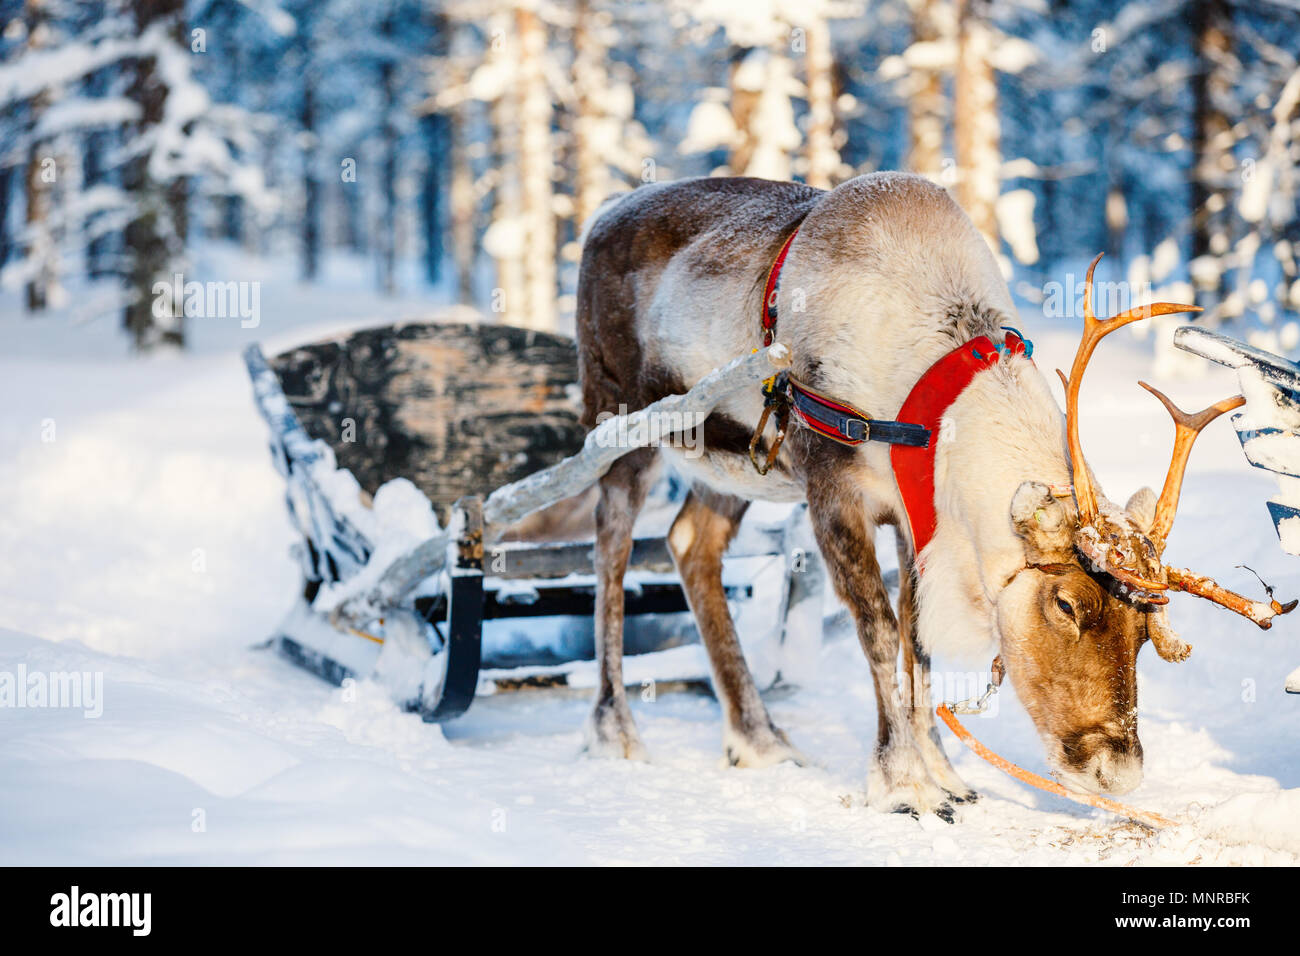 Reindeers in a winter forest in Finnish Lapland - Stock Image